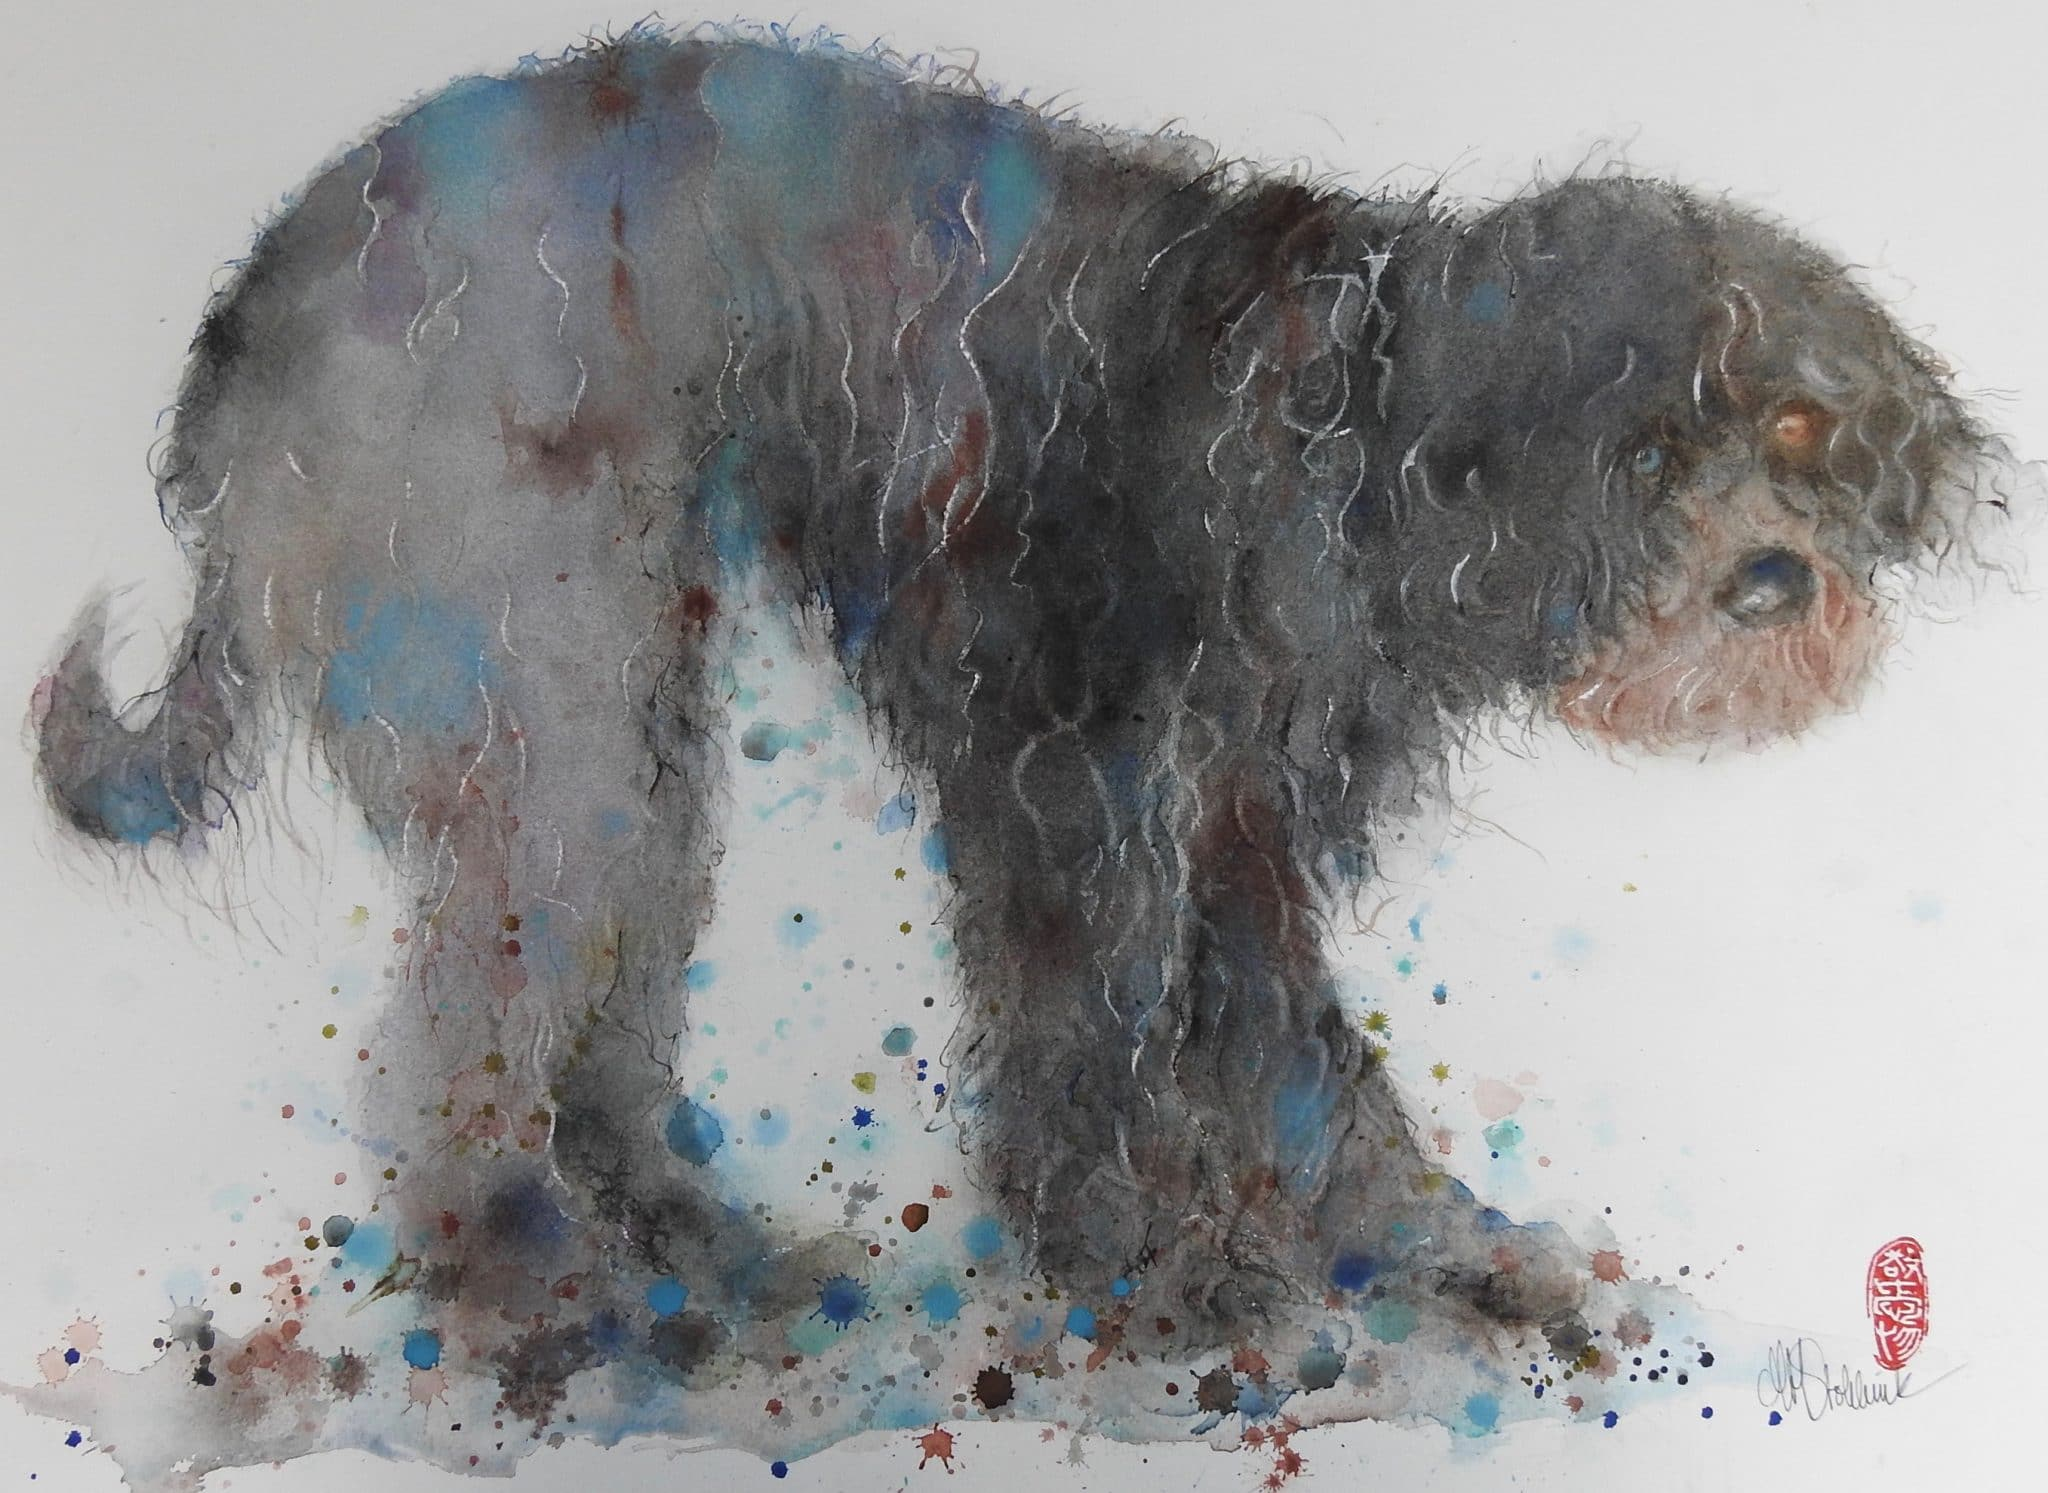 Doggy Does - 55x75cm